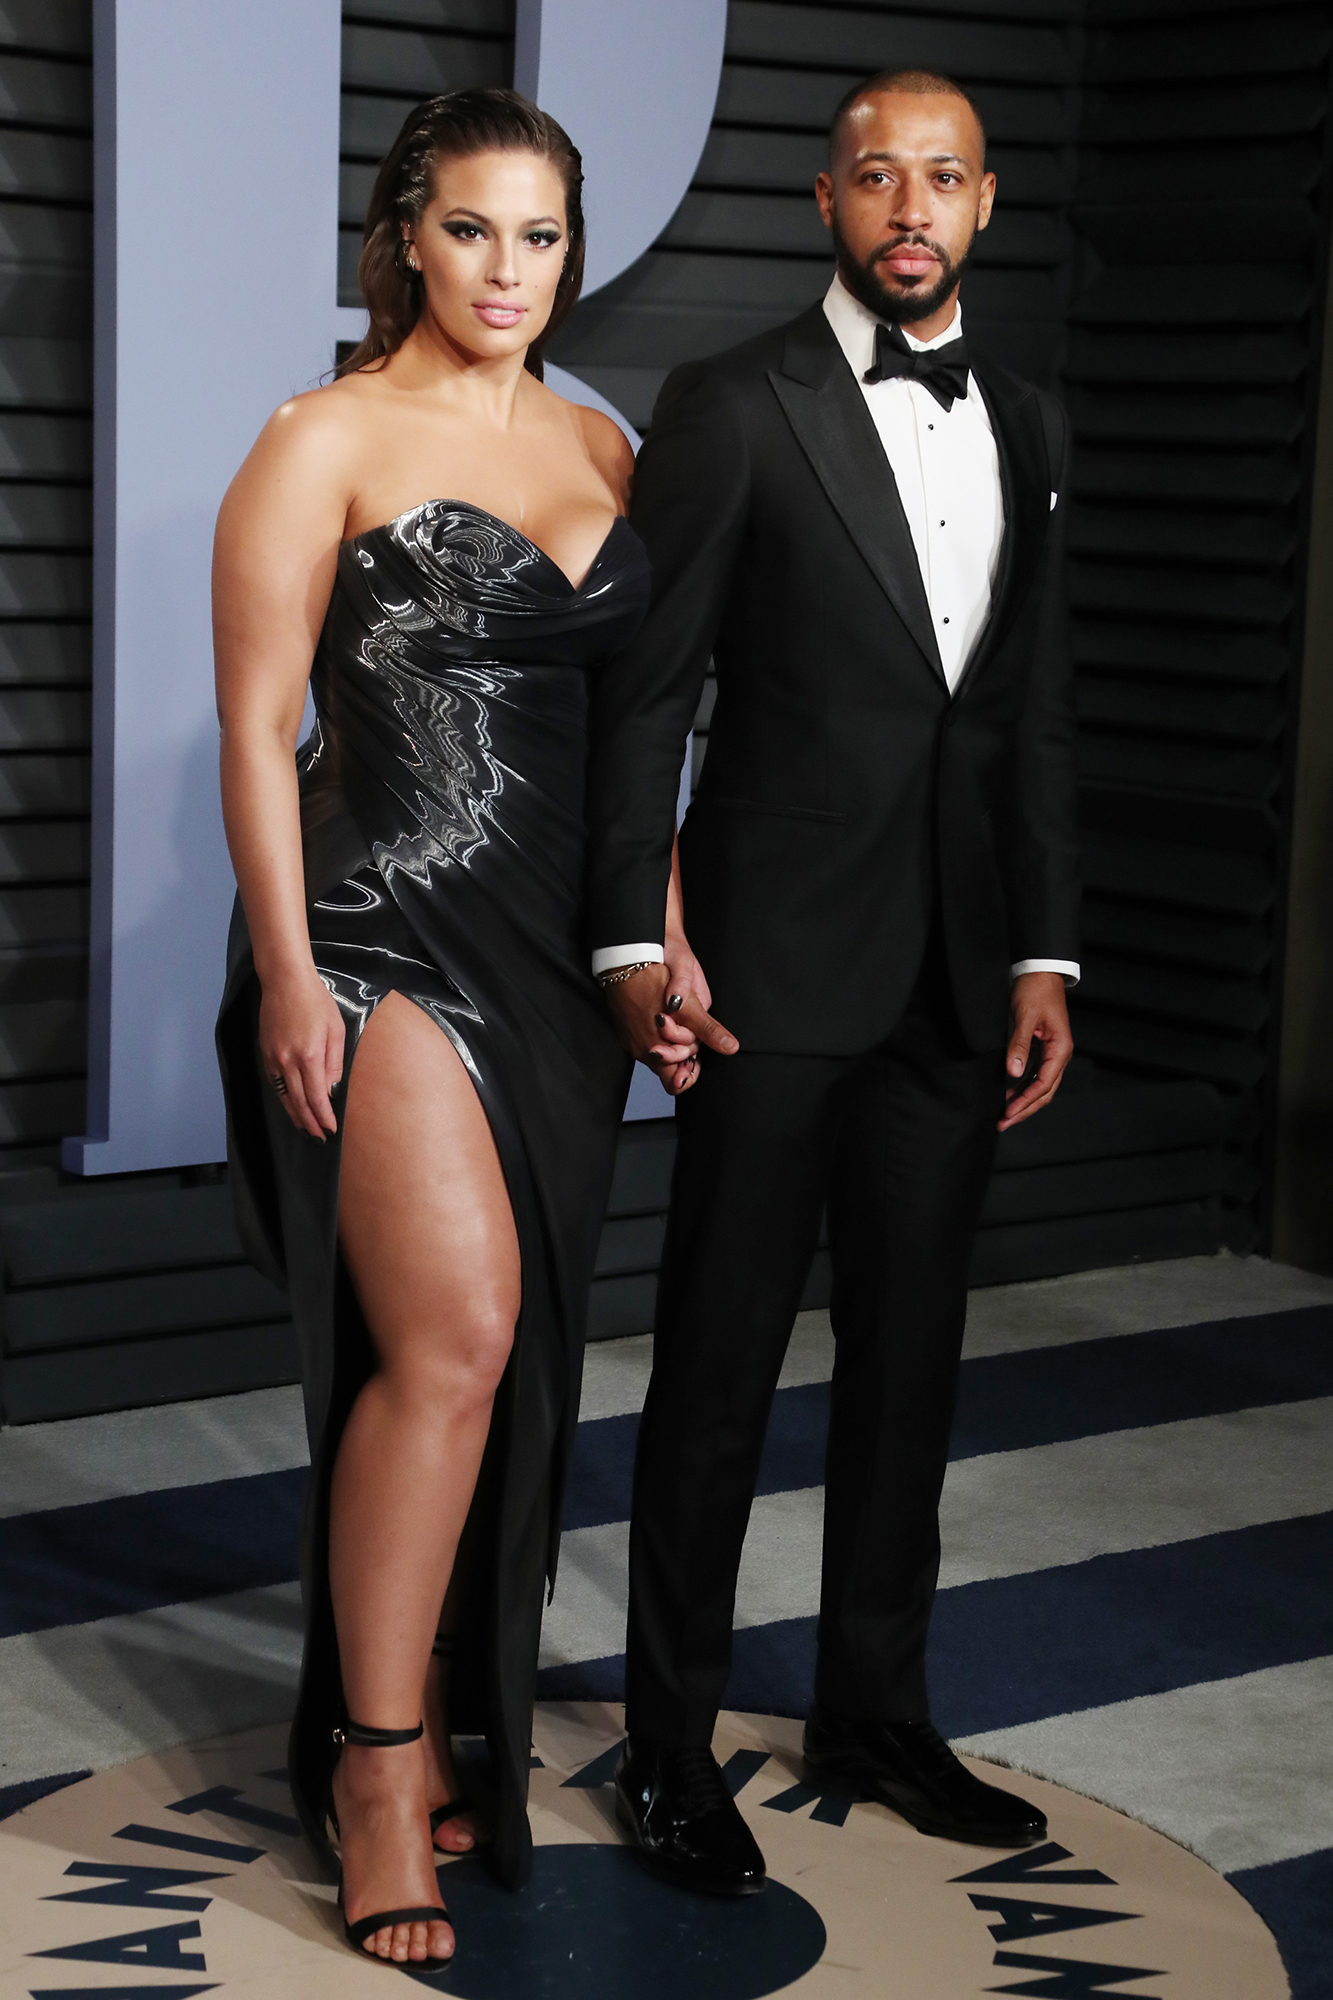 Pregnant Ashley Graham S Husband Photographs Her For Nude Maternity Shoot Healthmedicinentral